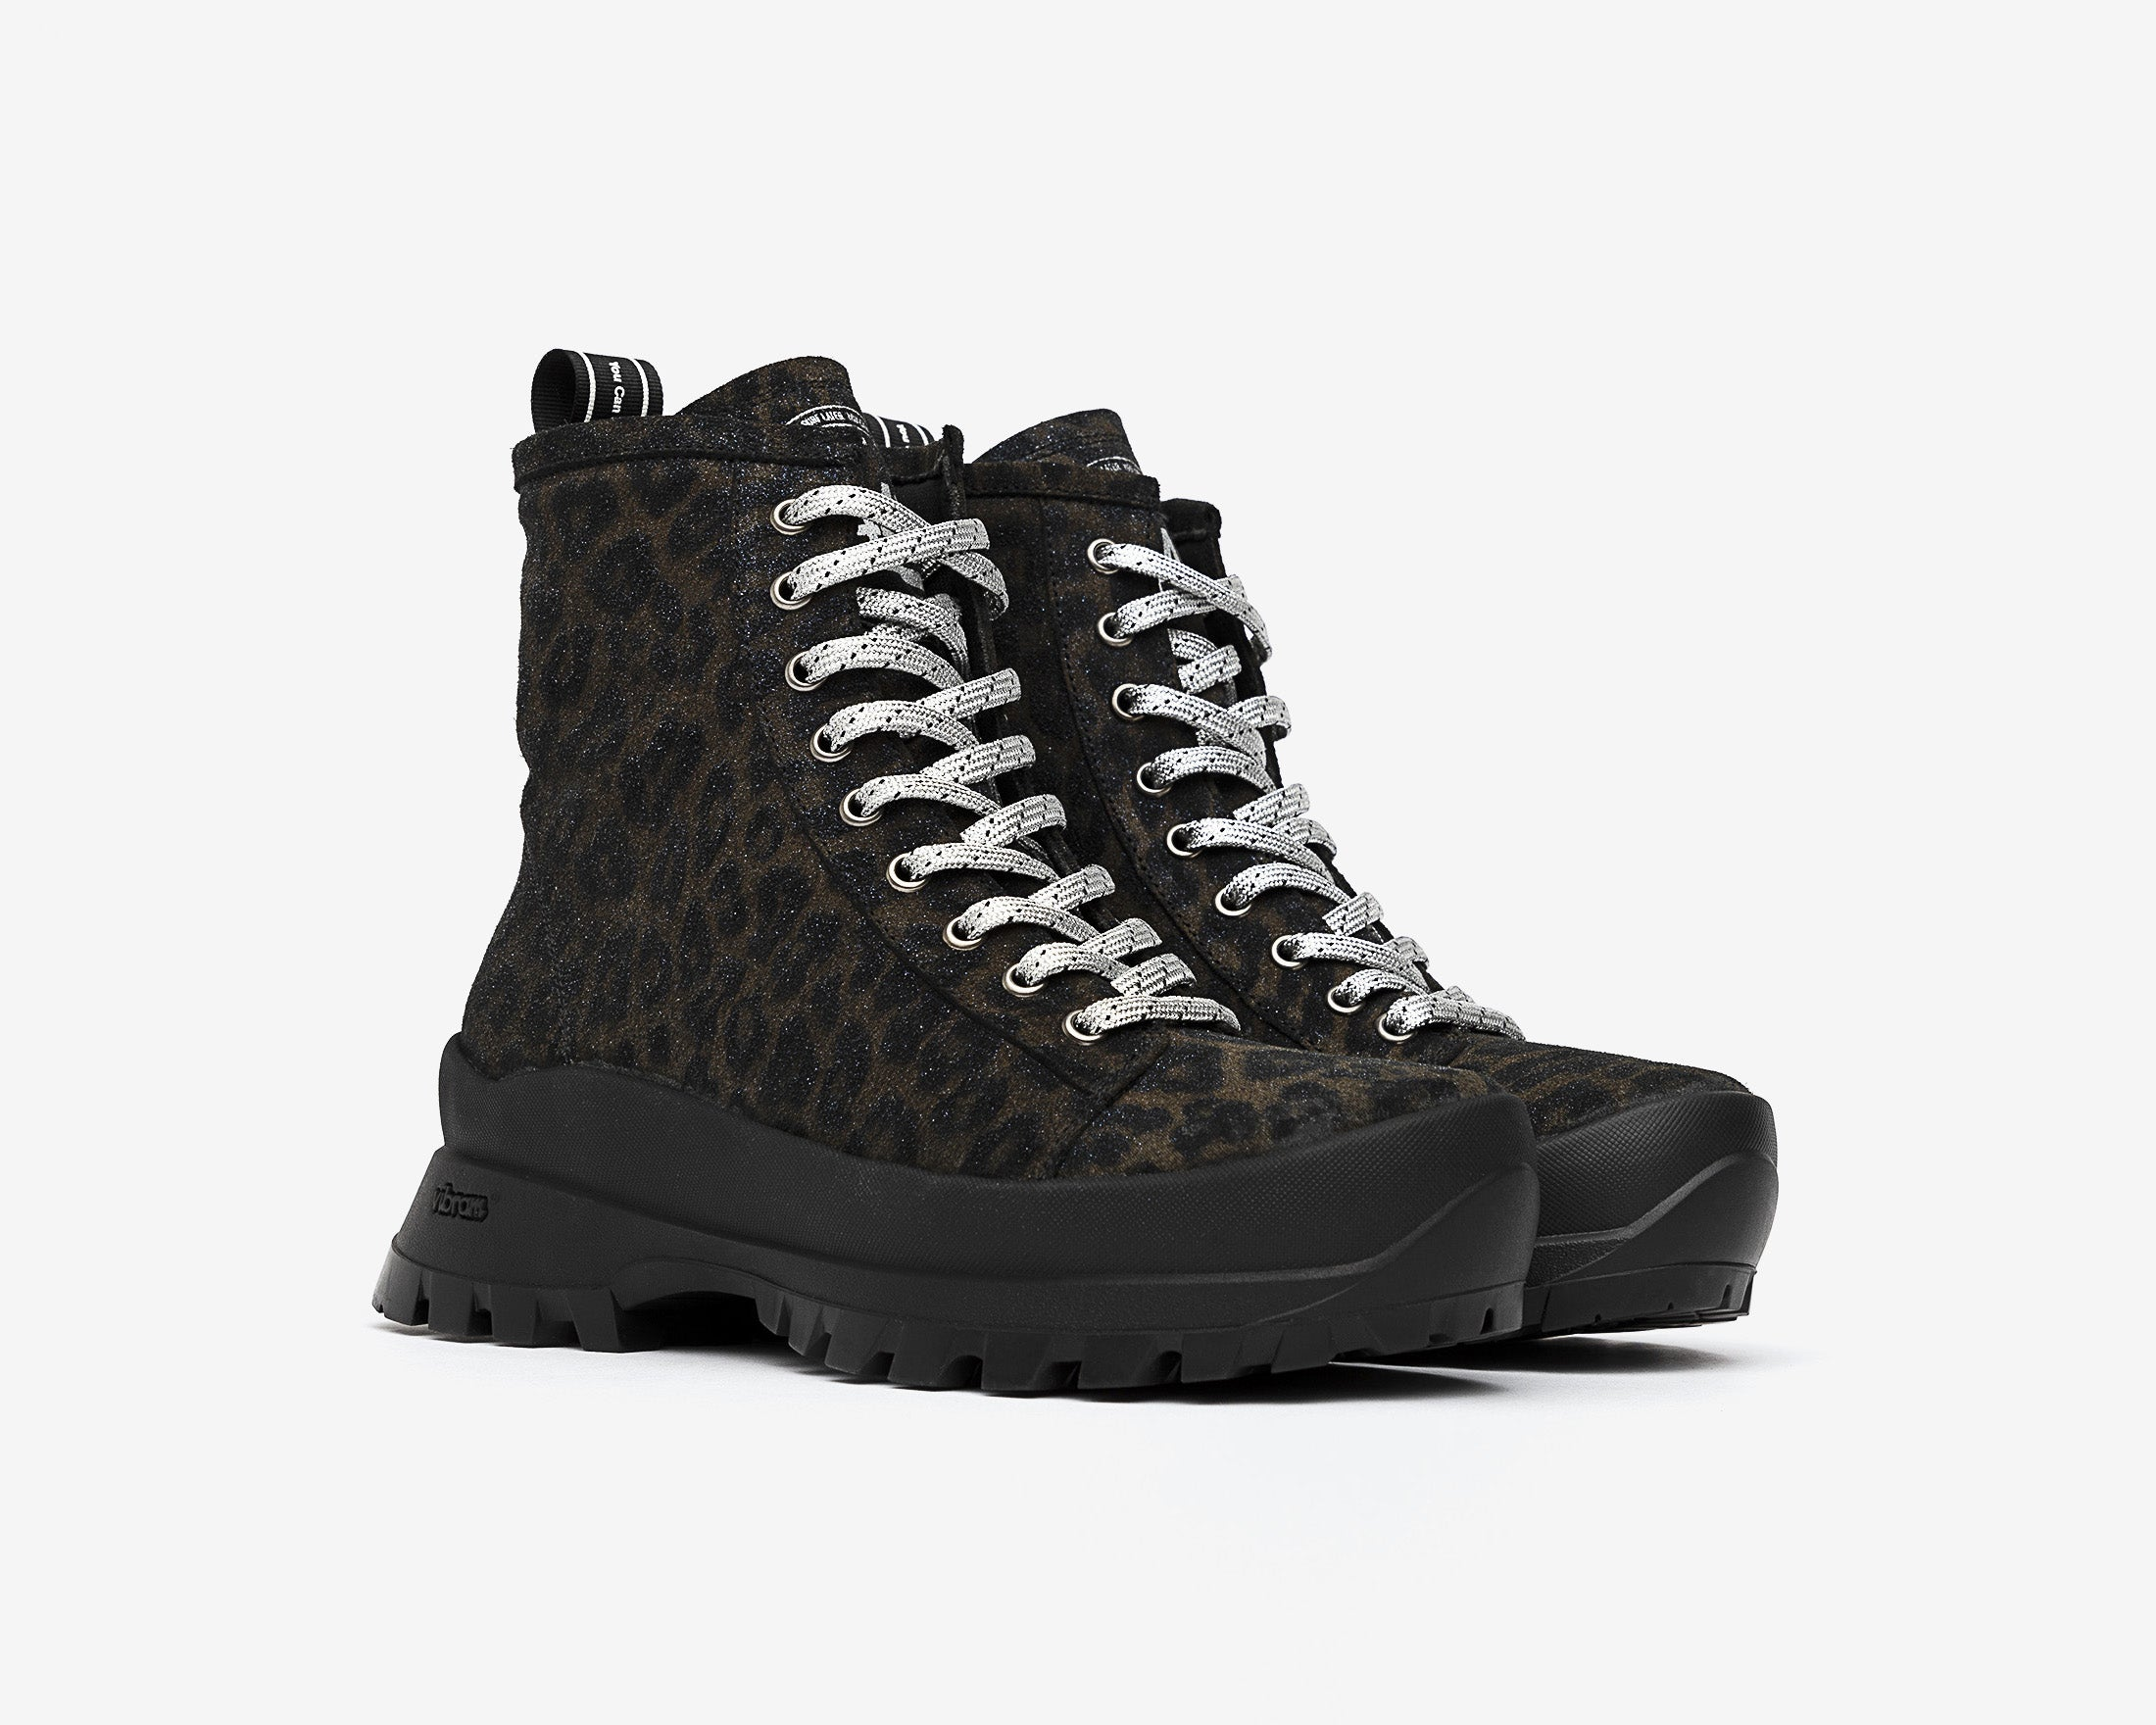 Denise Combat Boot with Vibram bottom in Black Leopard - Side